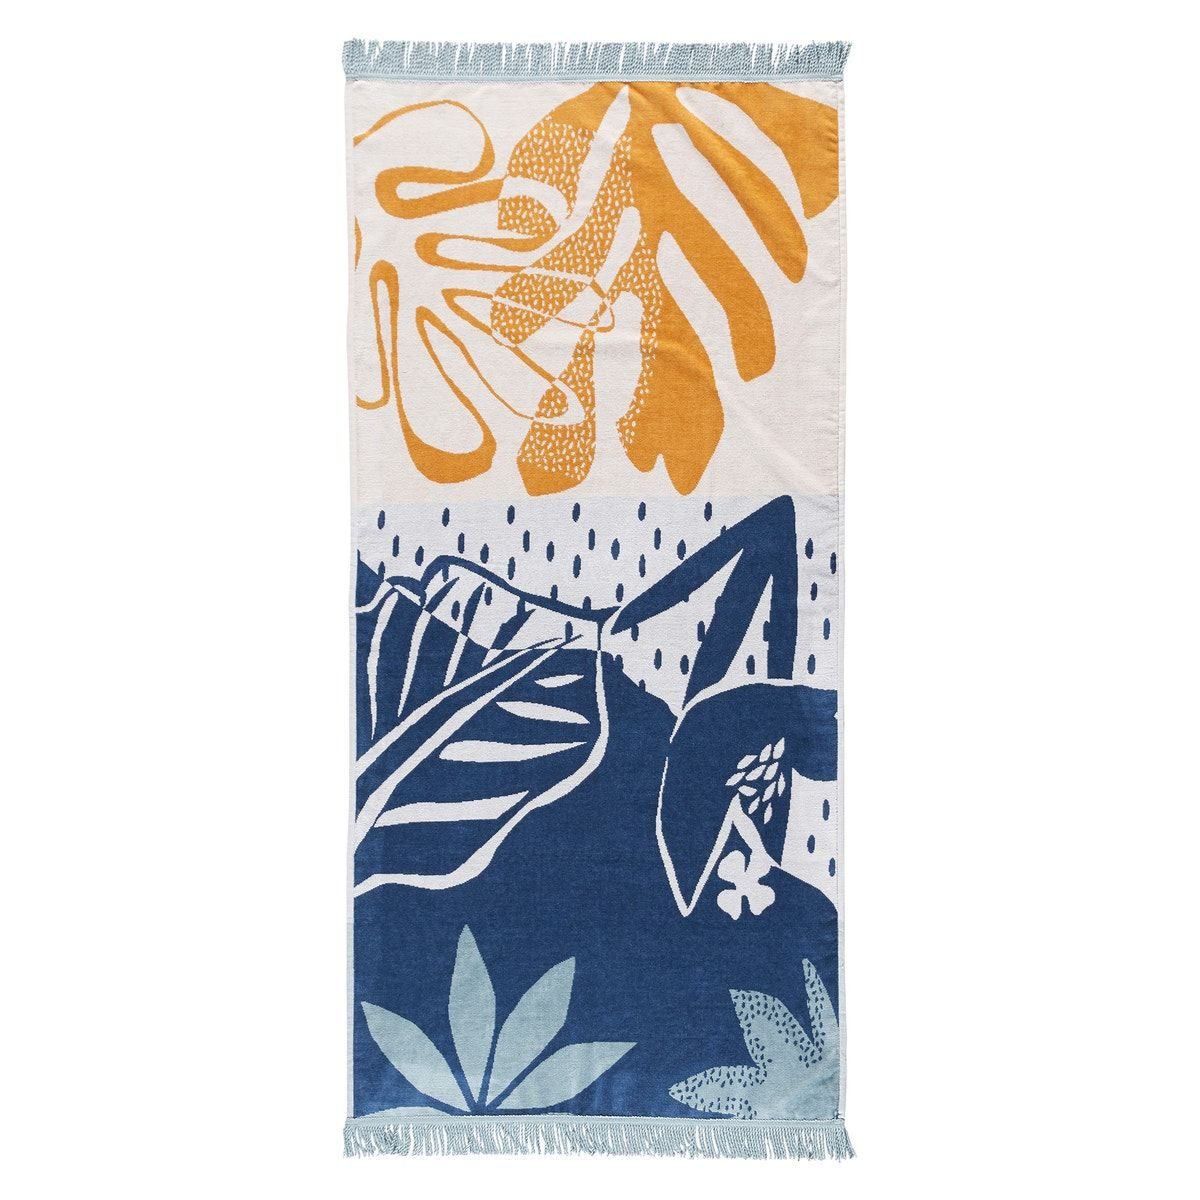 Maranhao beach towel in 100% cotton velour towelling, 400g/m². One side multi-coloured bouclé towelling, one side velour towelling in palm tree print.product details: •  100% cotton towelling, 400g/m² •  one side multi-coloured bouclé towelling, one side velour towelling in palm tree print •  7cm fringing •  washable at 60°c •  tumble dry •  made in portugalsize: •  90 x 180cmsee the full range of bath linen online.additional information: •  the oeko-tex® label guarantees that the items tested a